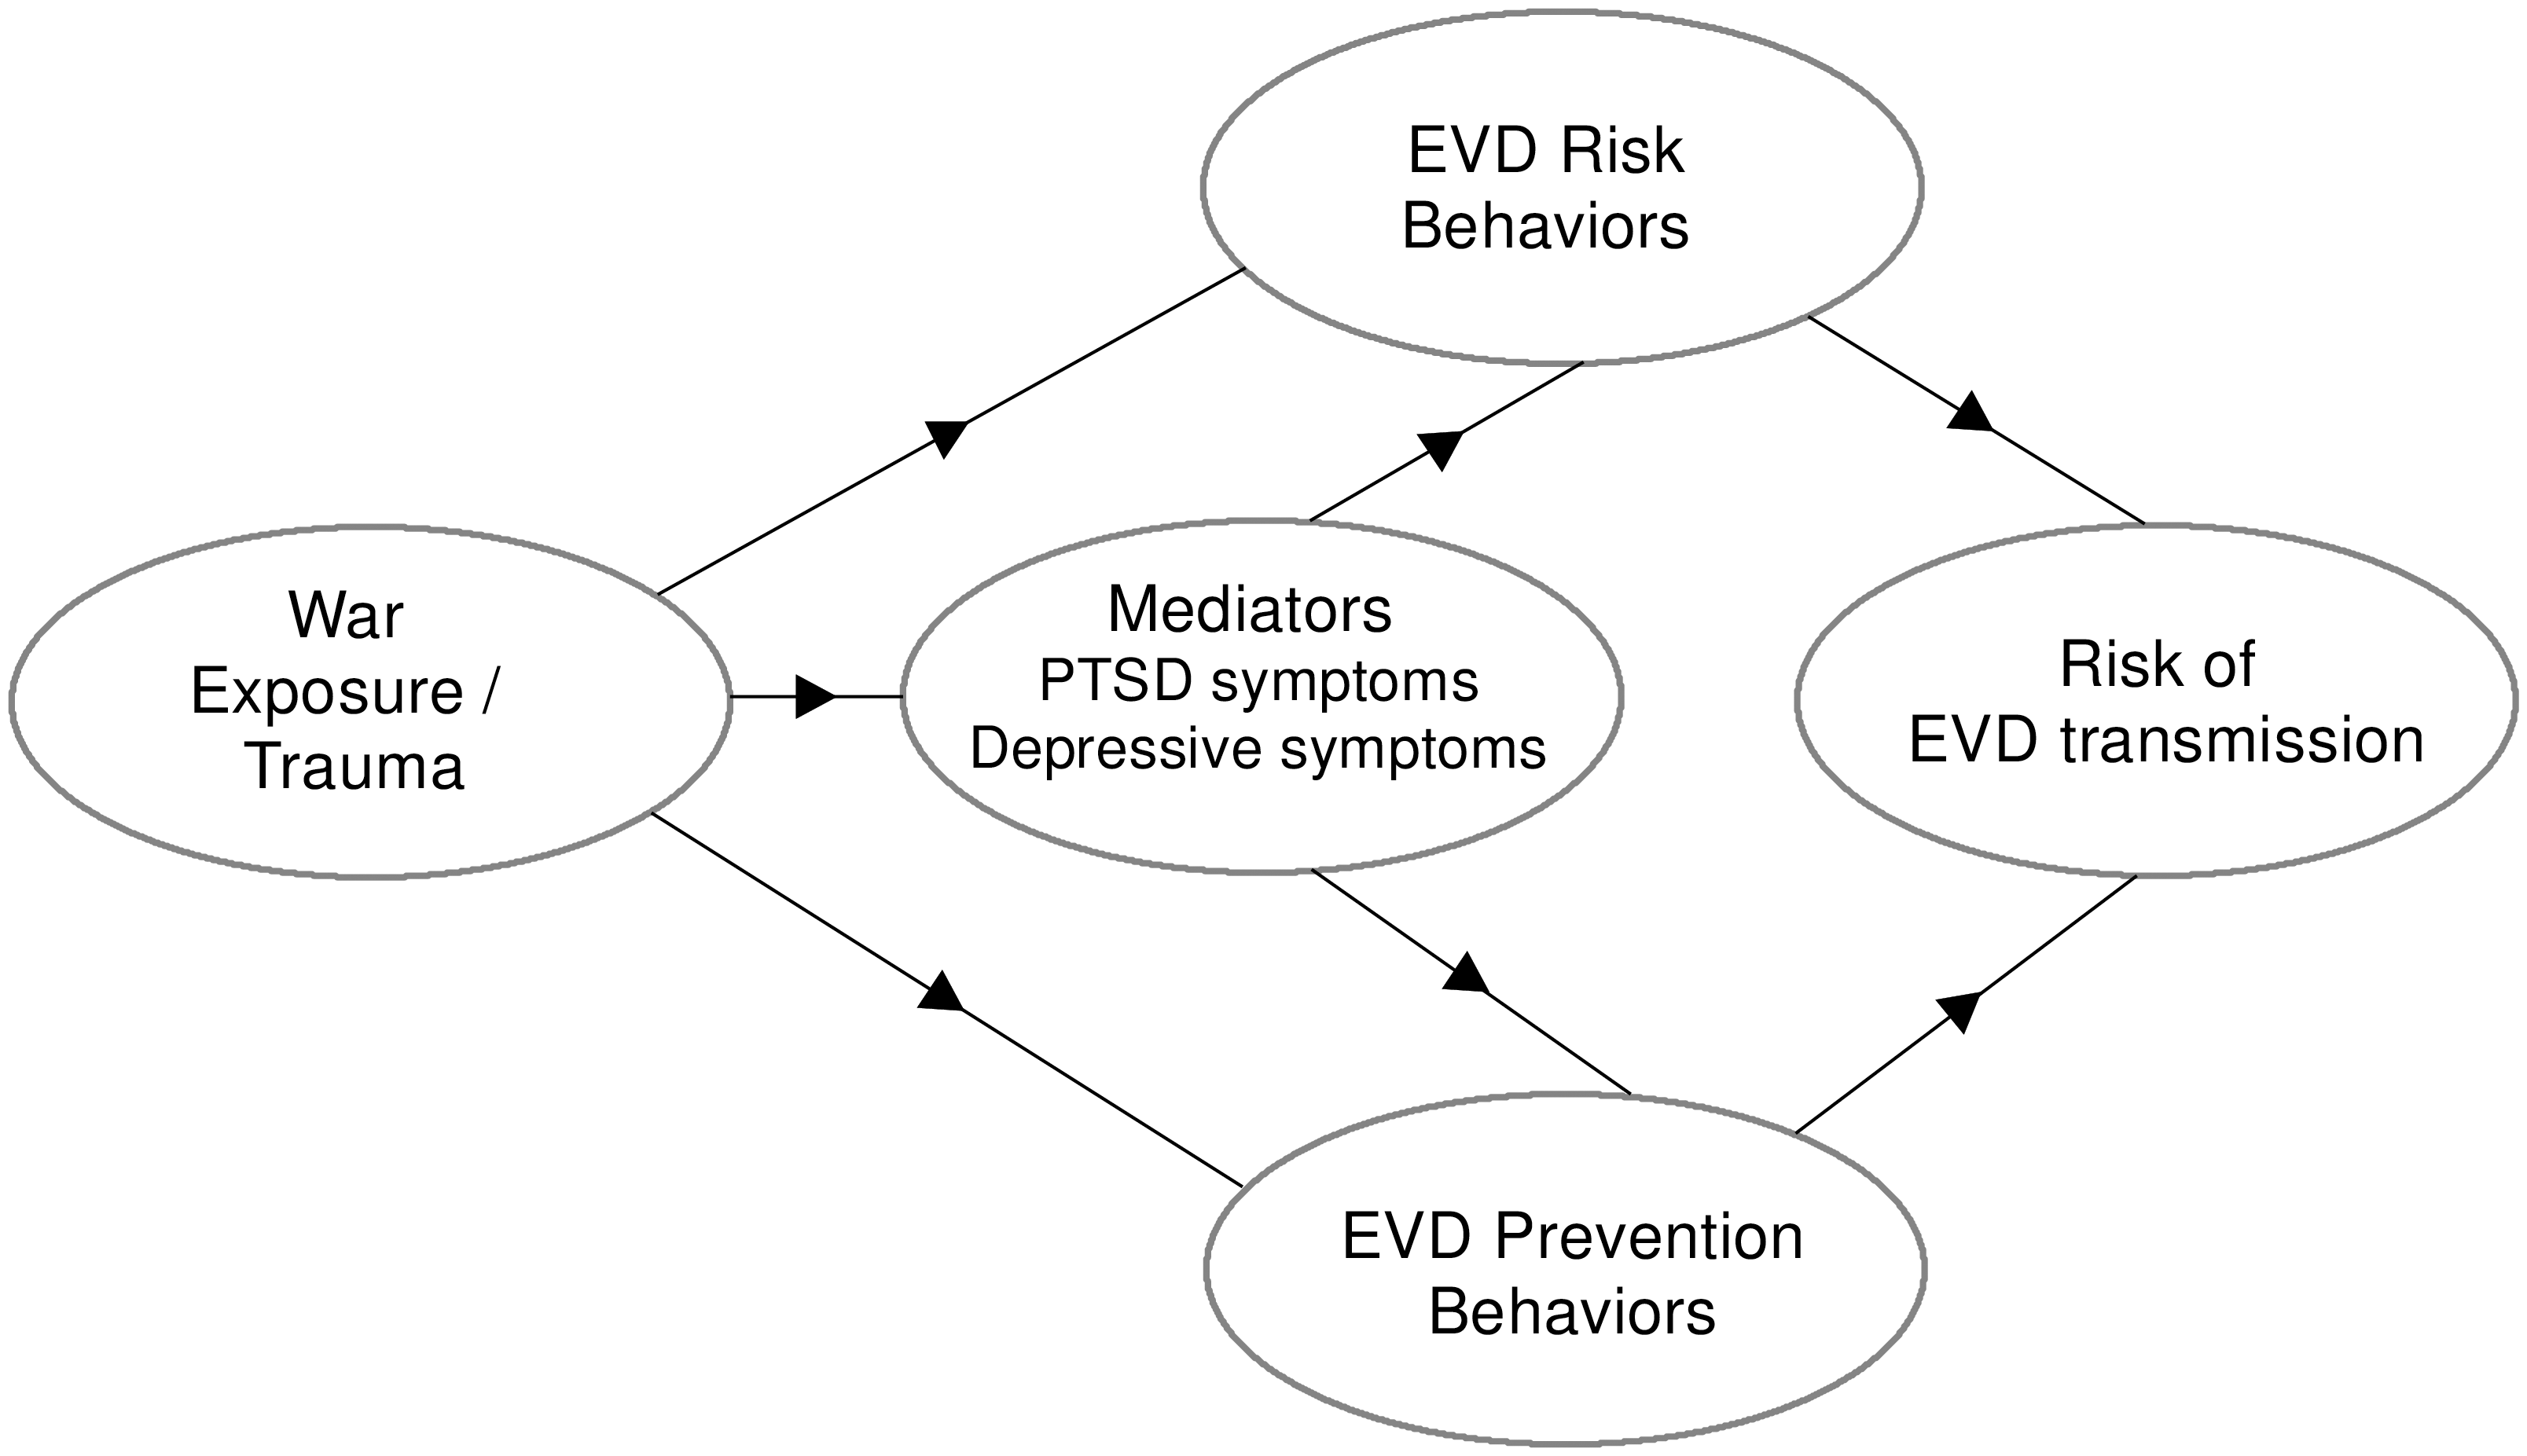 Conceptual model for war exposures, mental health, and EVD-related behaviors.